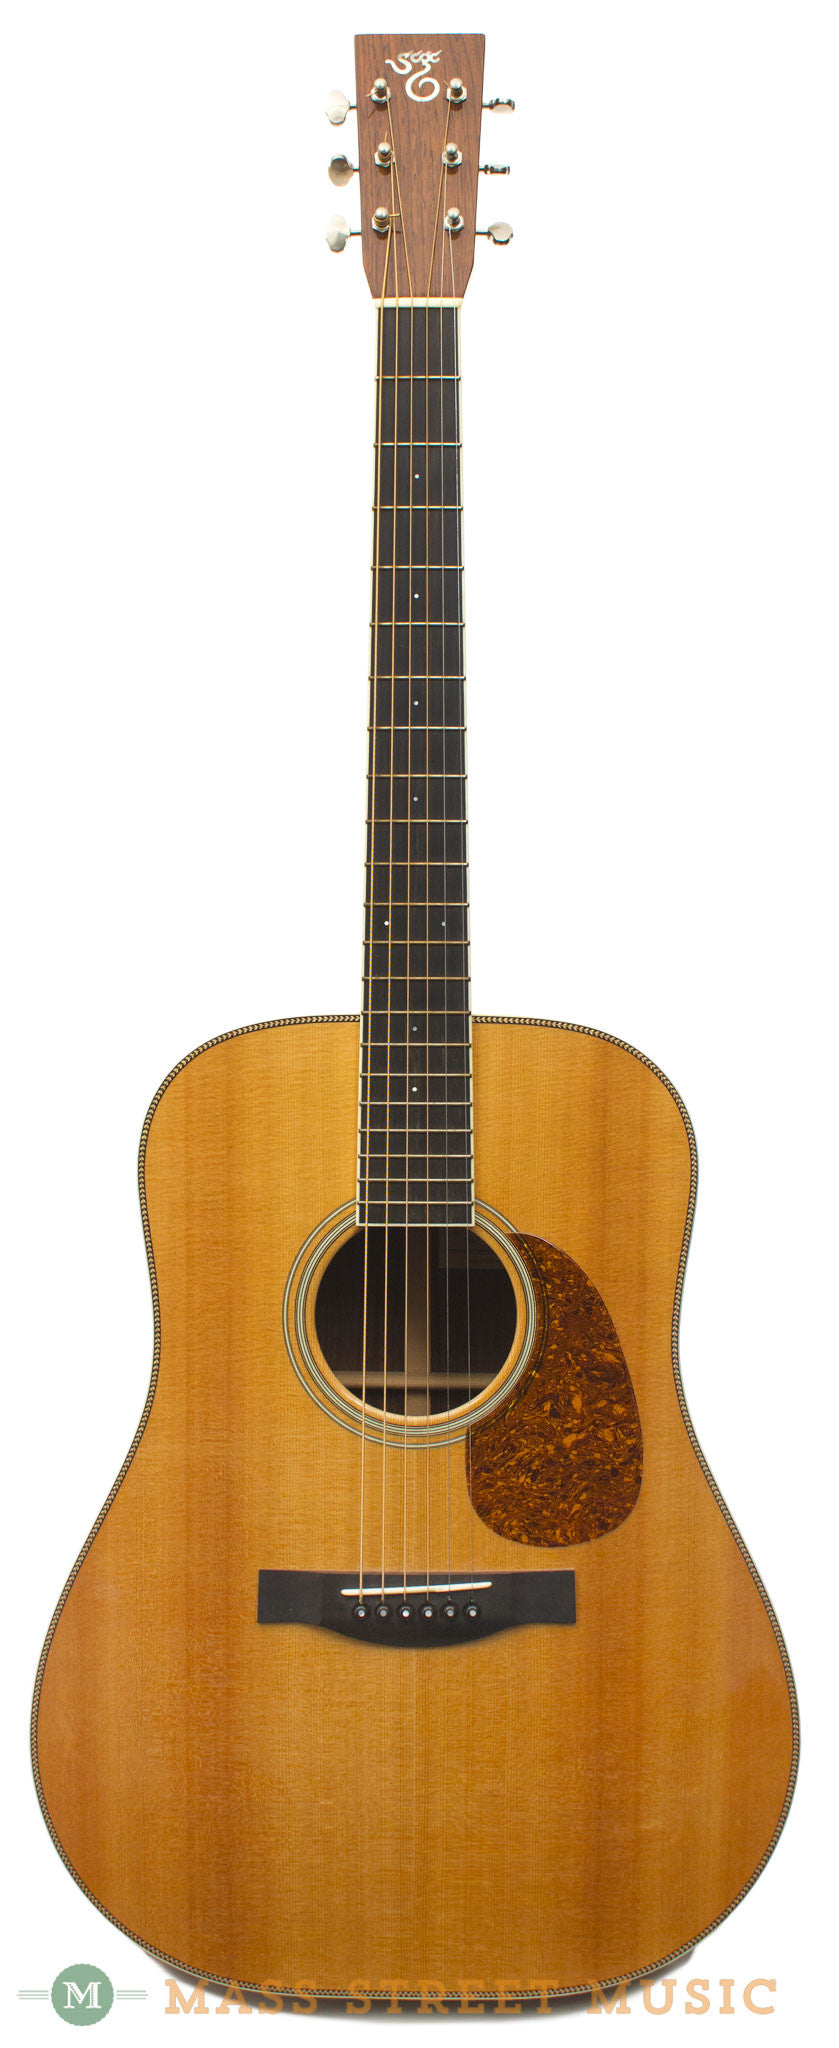 santa cruz dh 2006 used acoustic guitar with original hardshell case mass street music store. Black Bedroom Furniture Sets. Home Design Ideas